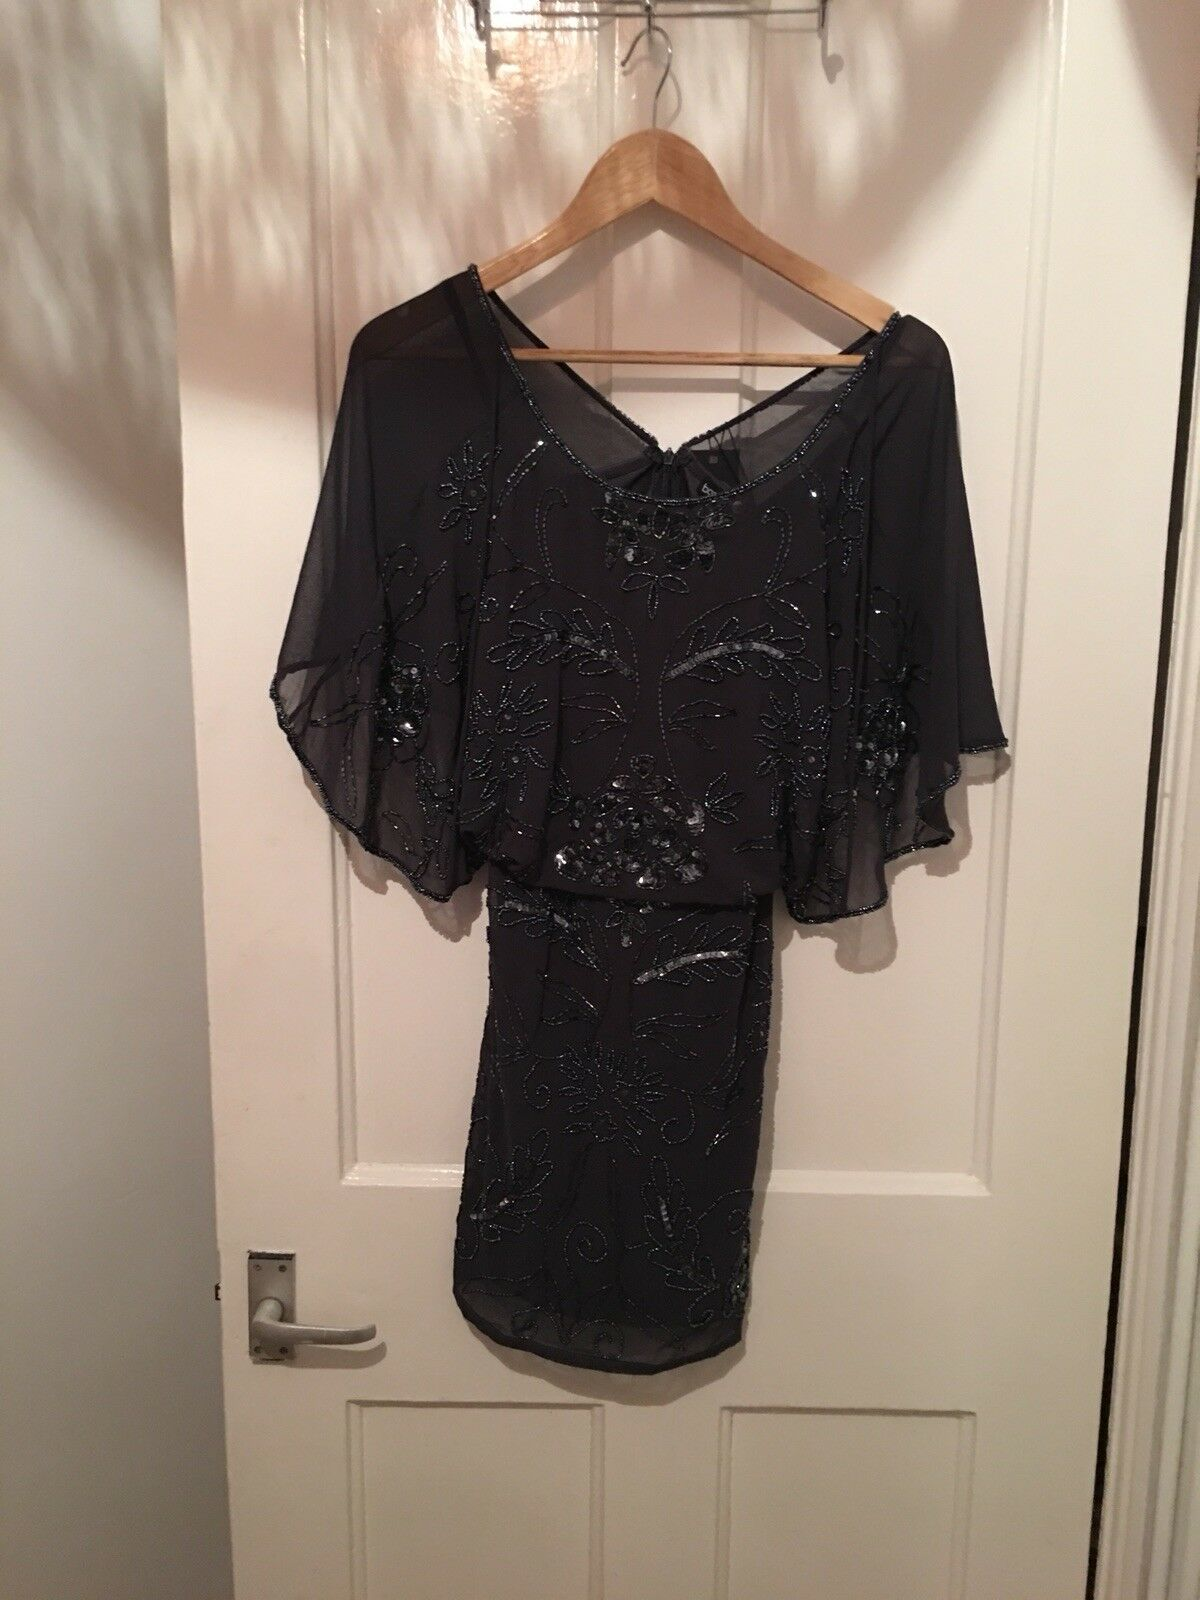 BNWT Boohoo Size 8 Navy Sequin Peplum Dress